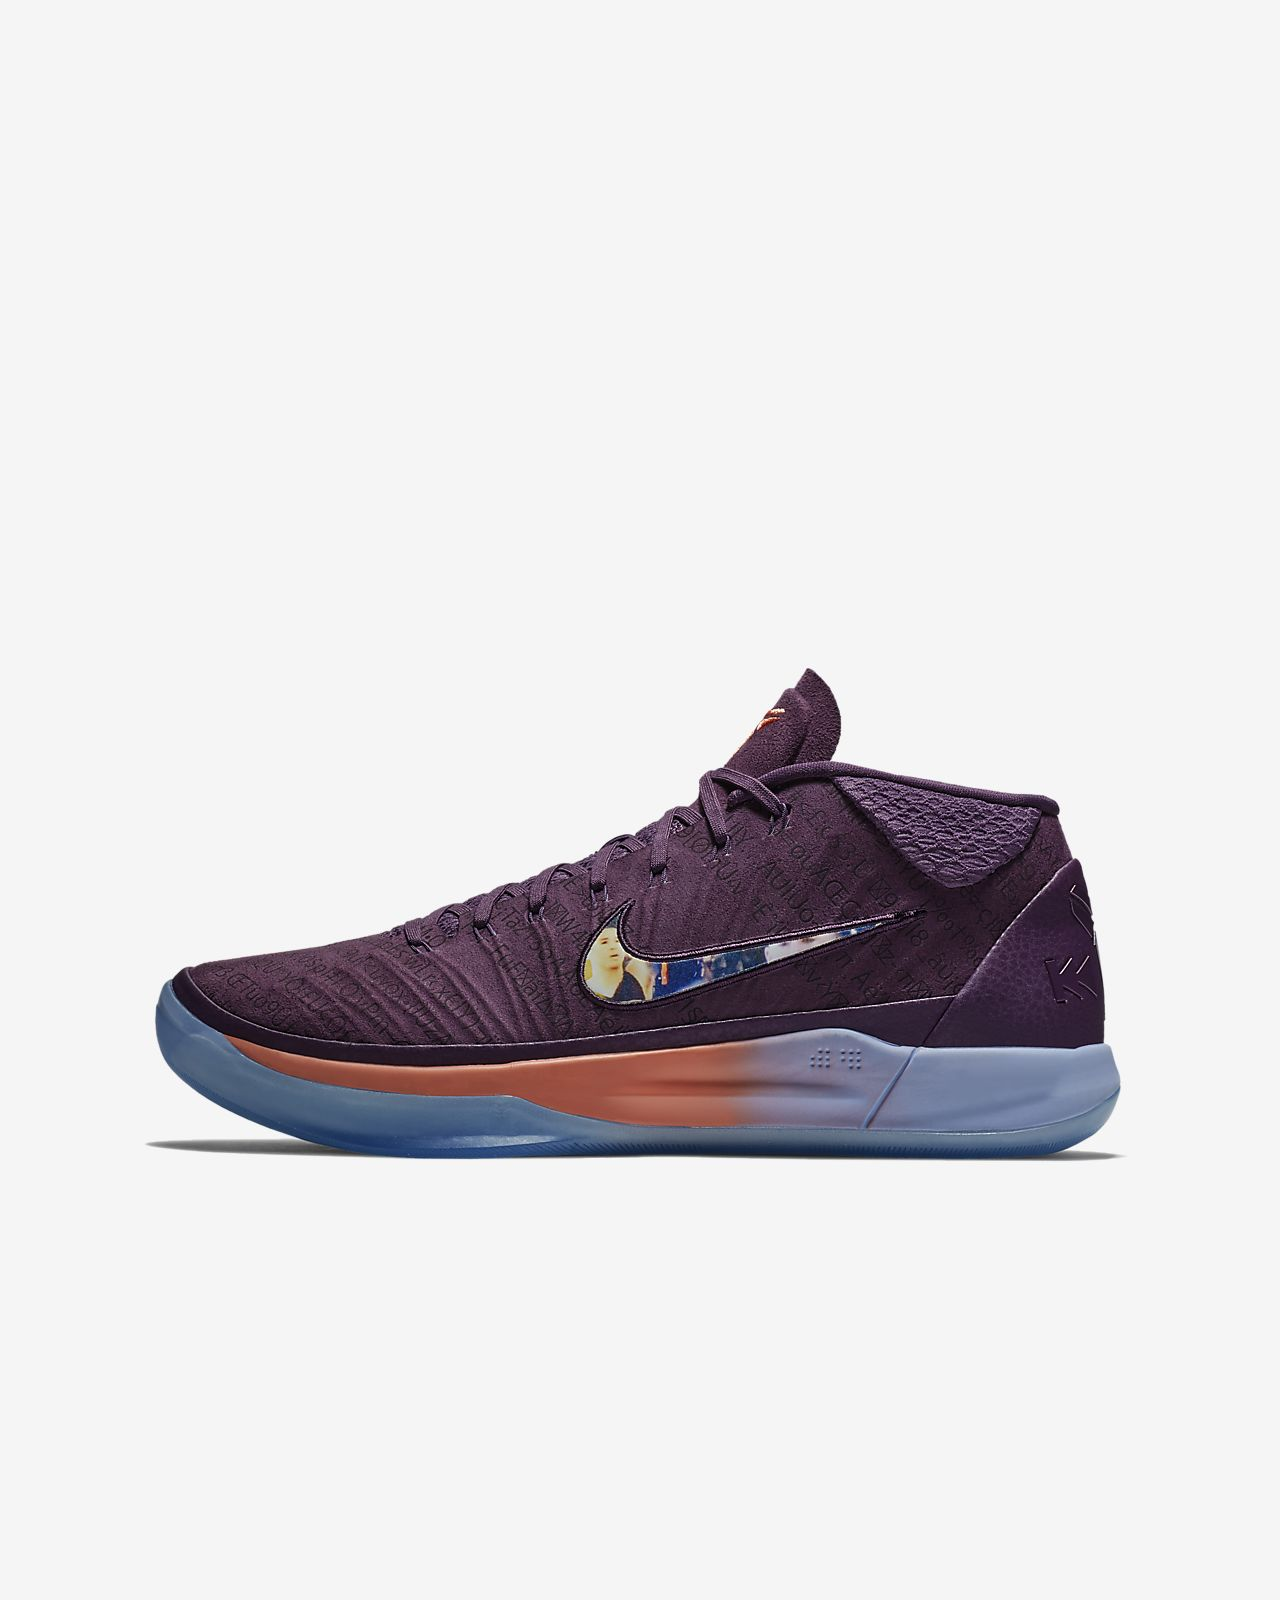 half off 98bc1 3ccd0 ... promo code for kobe 8 cheapest online discount kobe size results shop  from the worlds largest